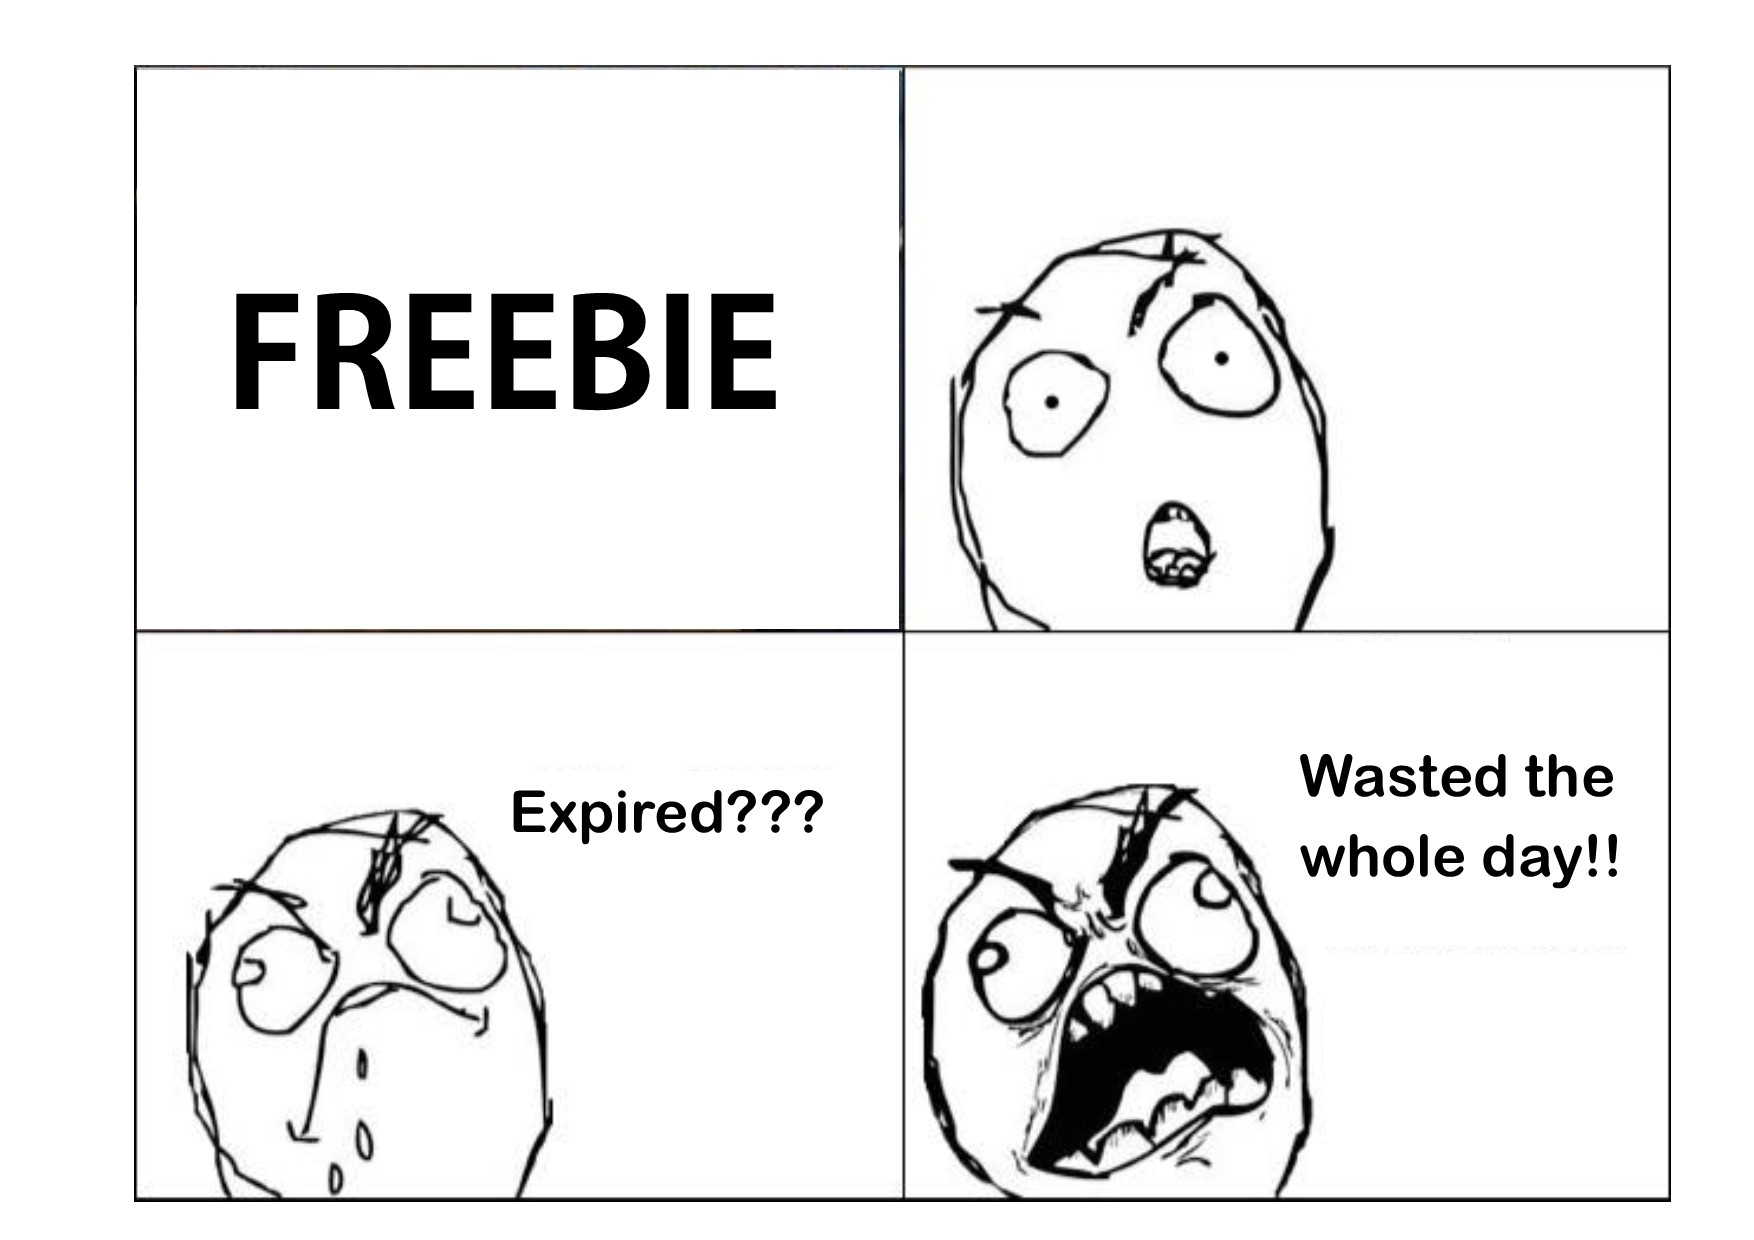 FREEBIE Expired??? Wasted the whole day!!